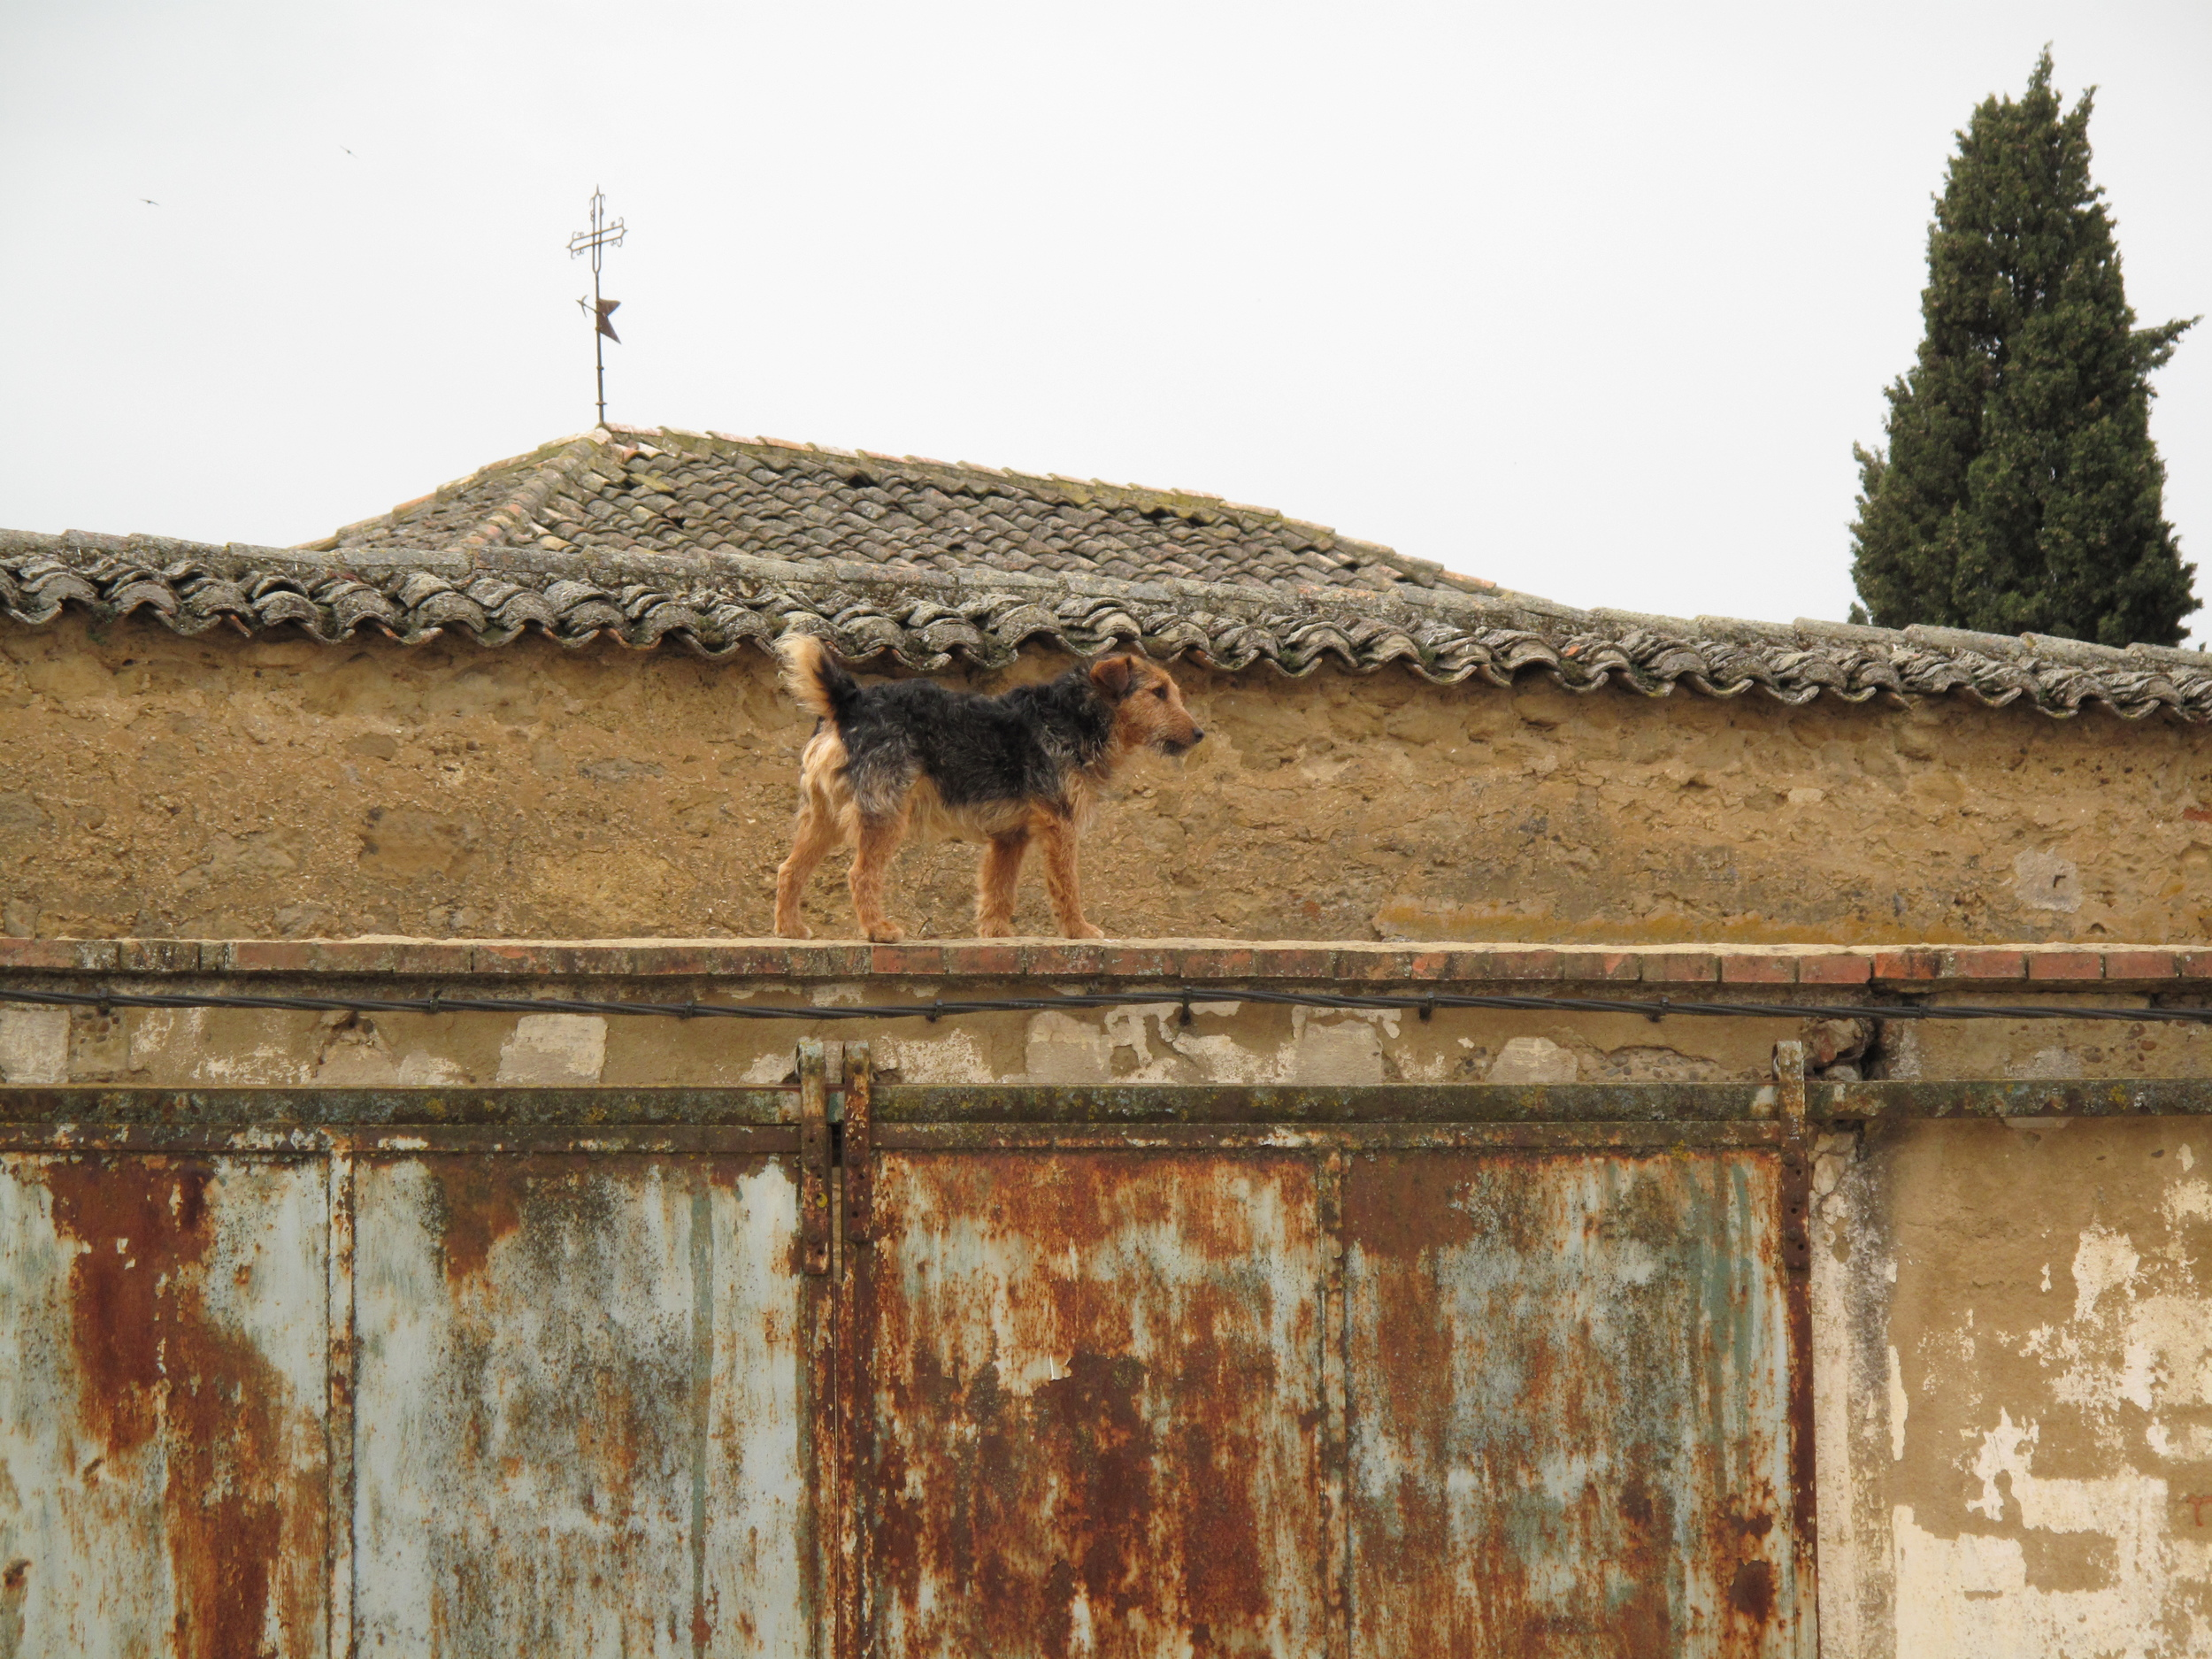 This was another bus day. I bussed 26.8 km from Carrión de los Condes to Terradillos de Templarios after walking 5.6km from Villalcázar de Sirga. This dog was walking back and forth on the roof of this house, barking at people.